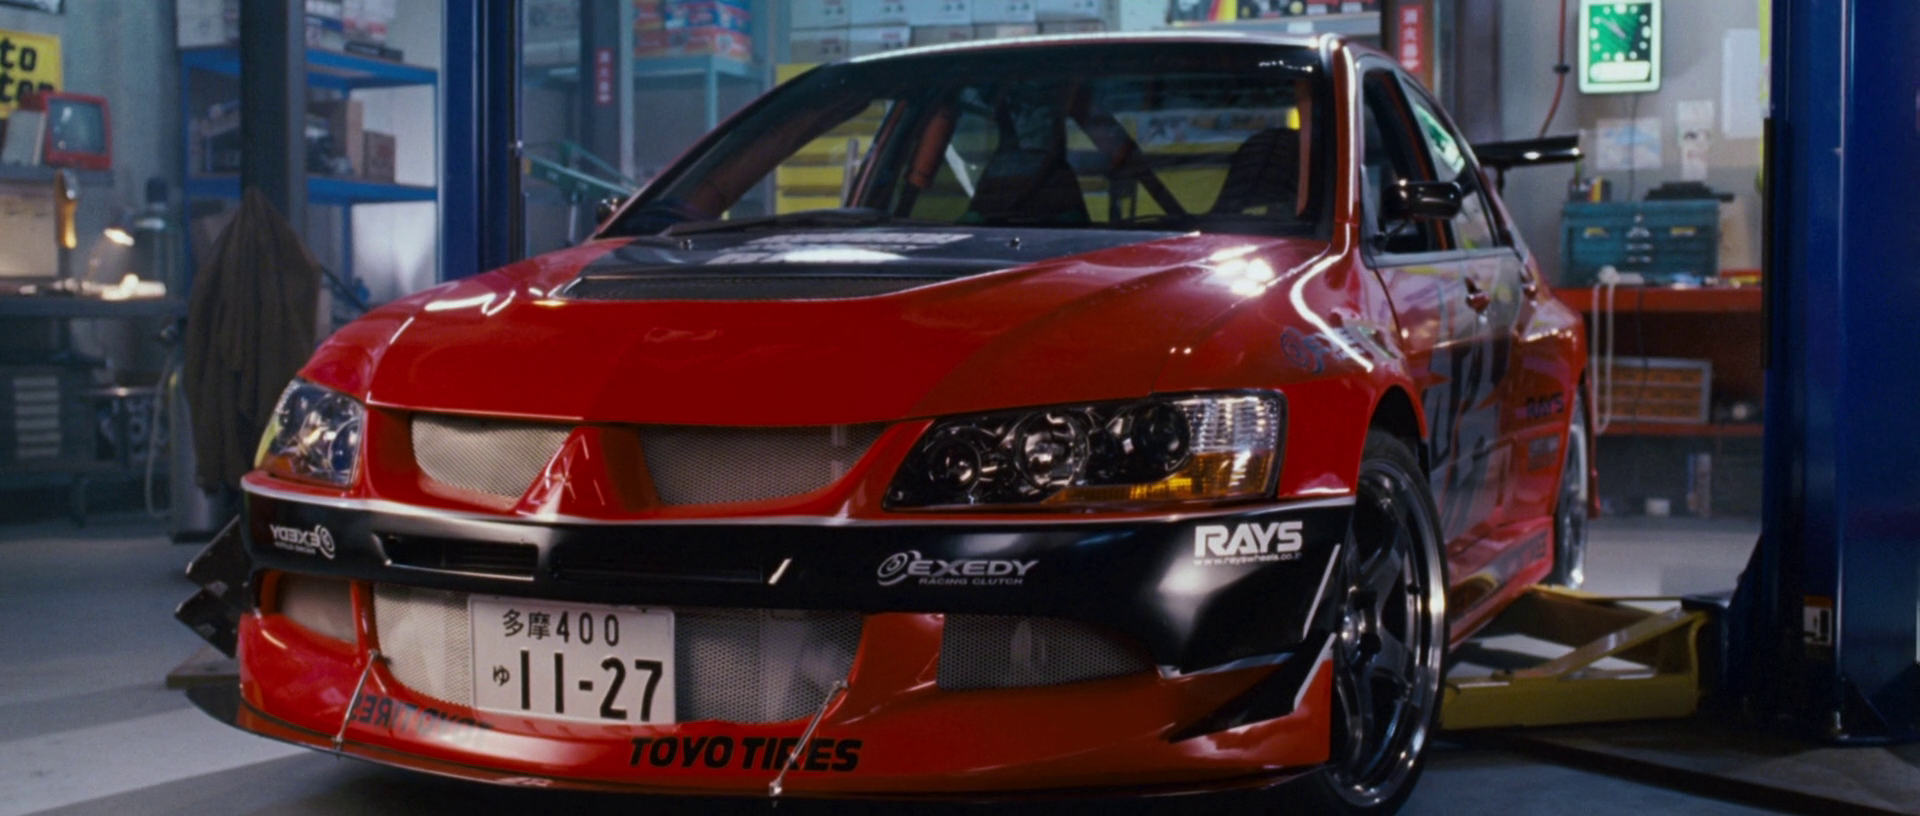 2006 Mitsubishi Lancer Evolution IX | The Fast and the ...